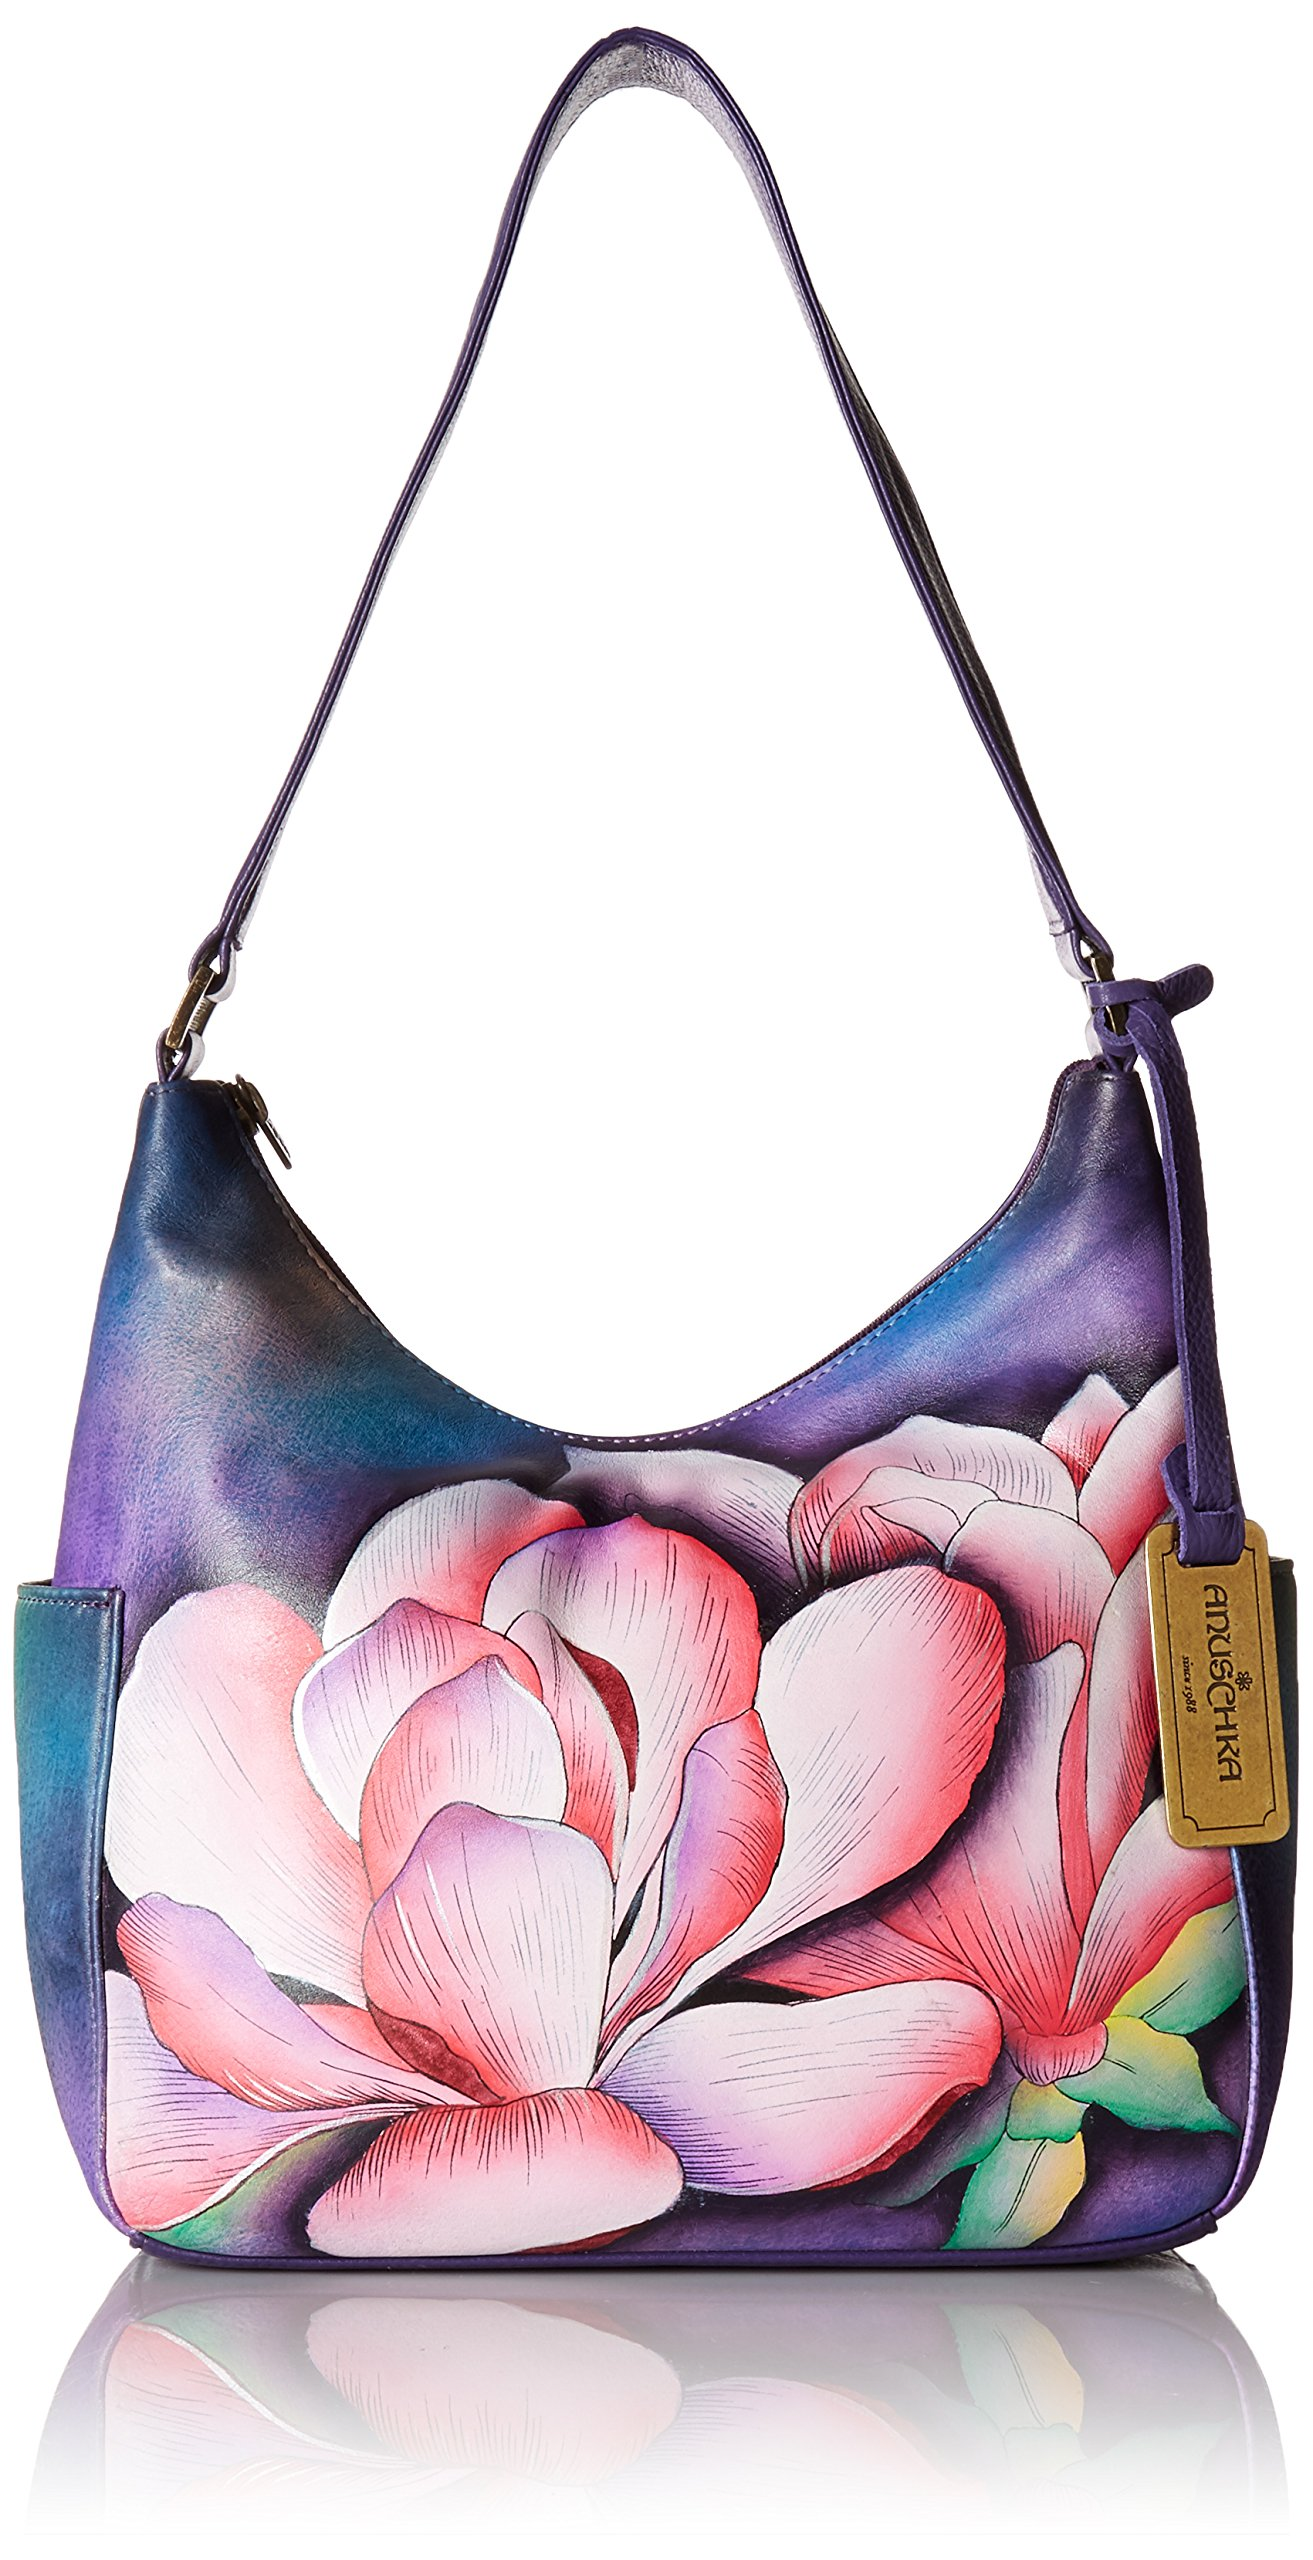 Anuschka Hand Painted Leather Women'S Classic Hobo with Side Pockets, Magnolia Melody